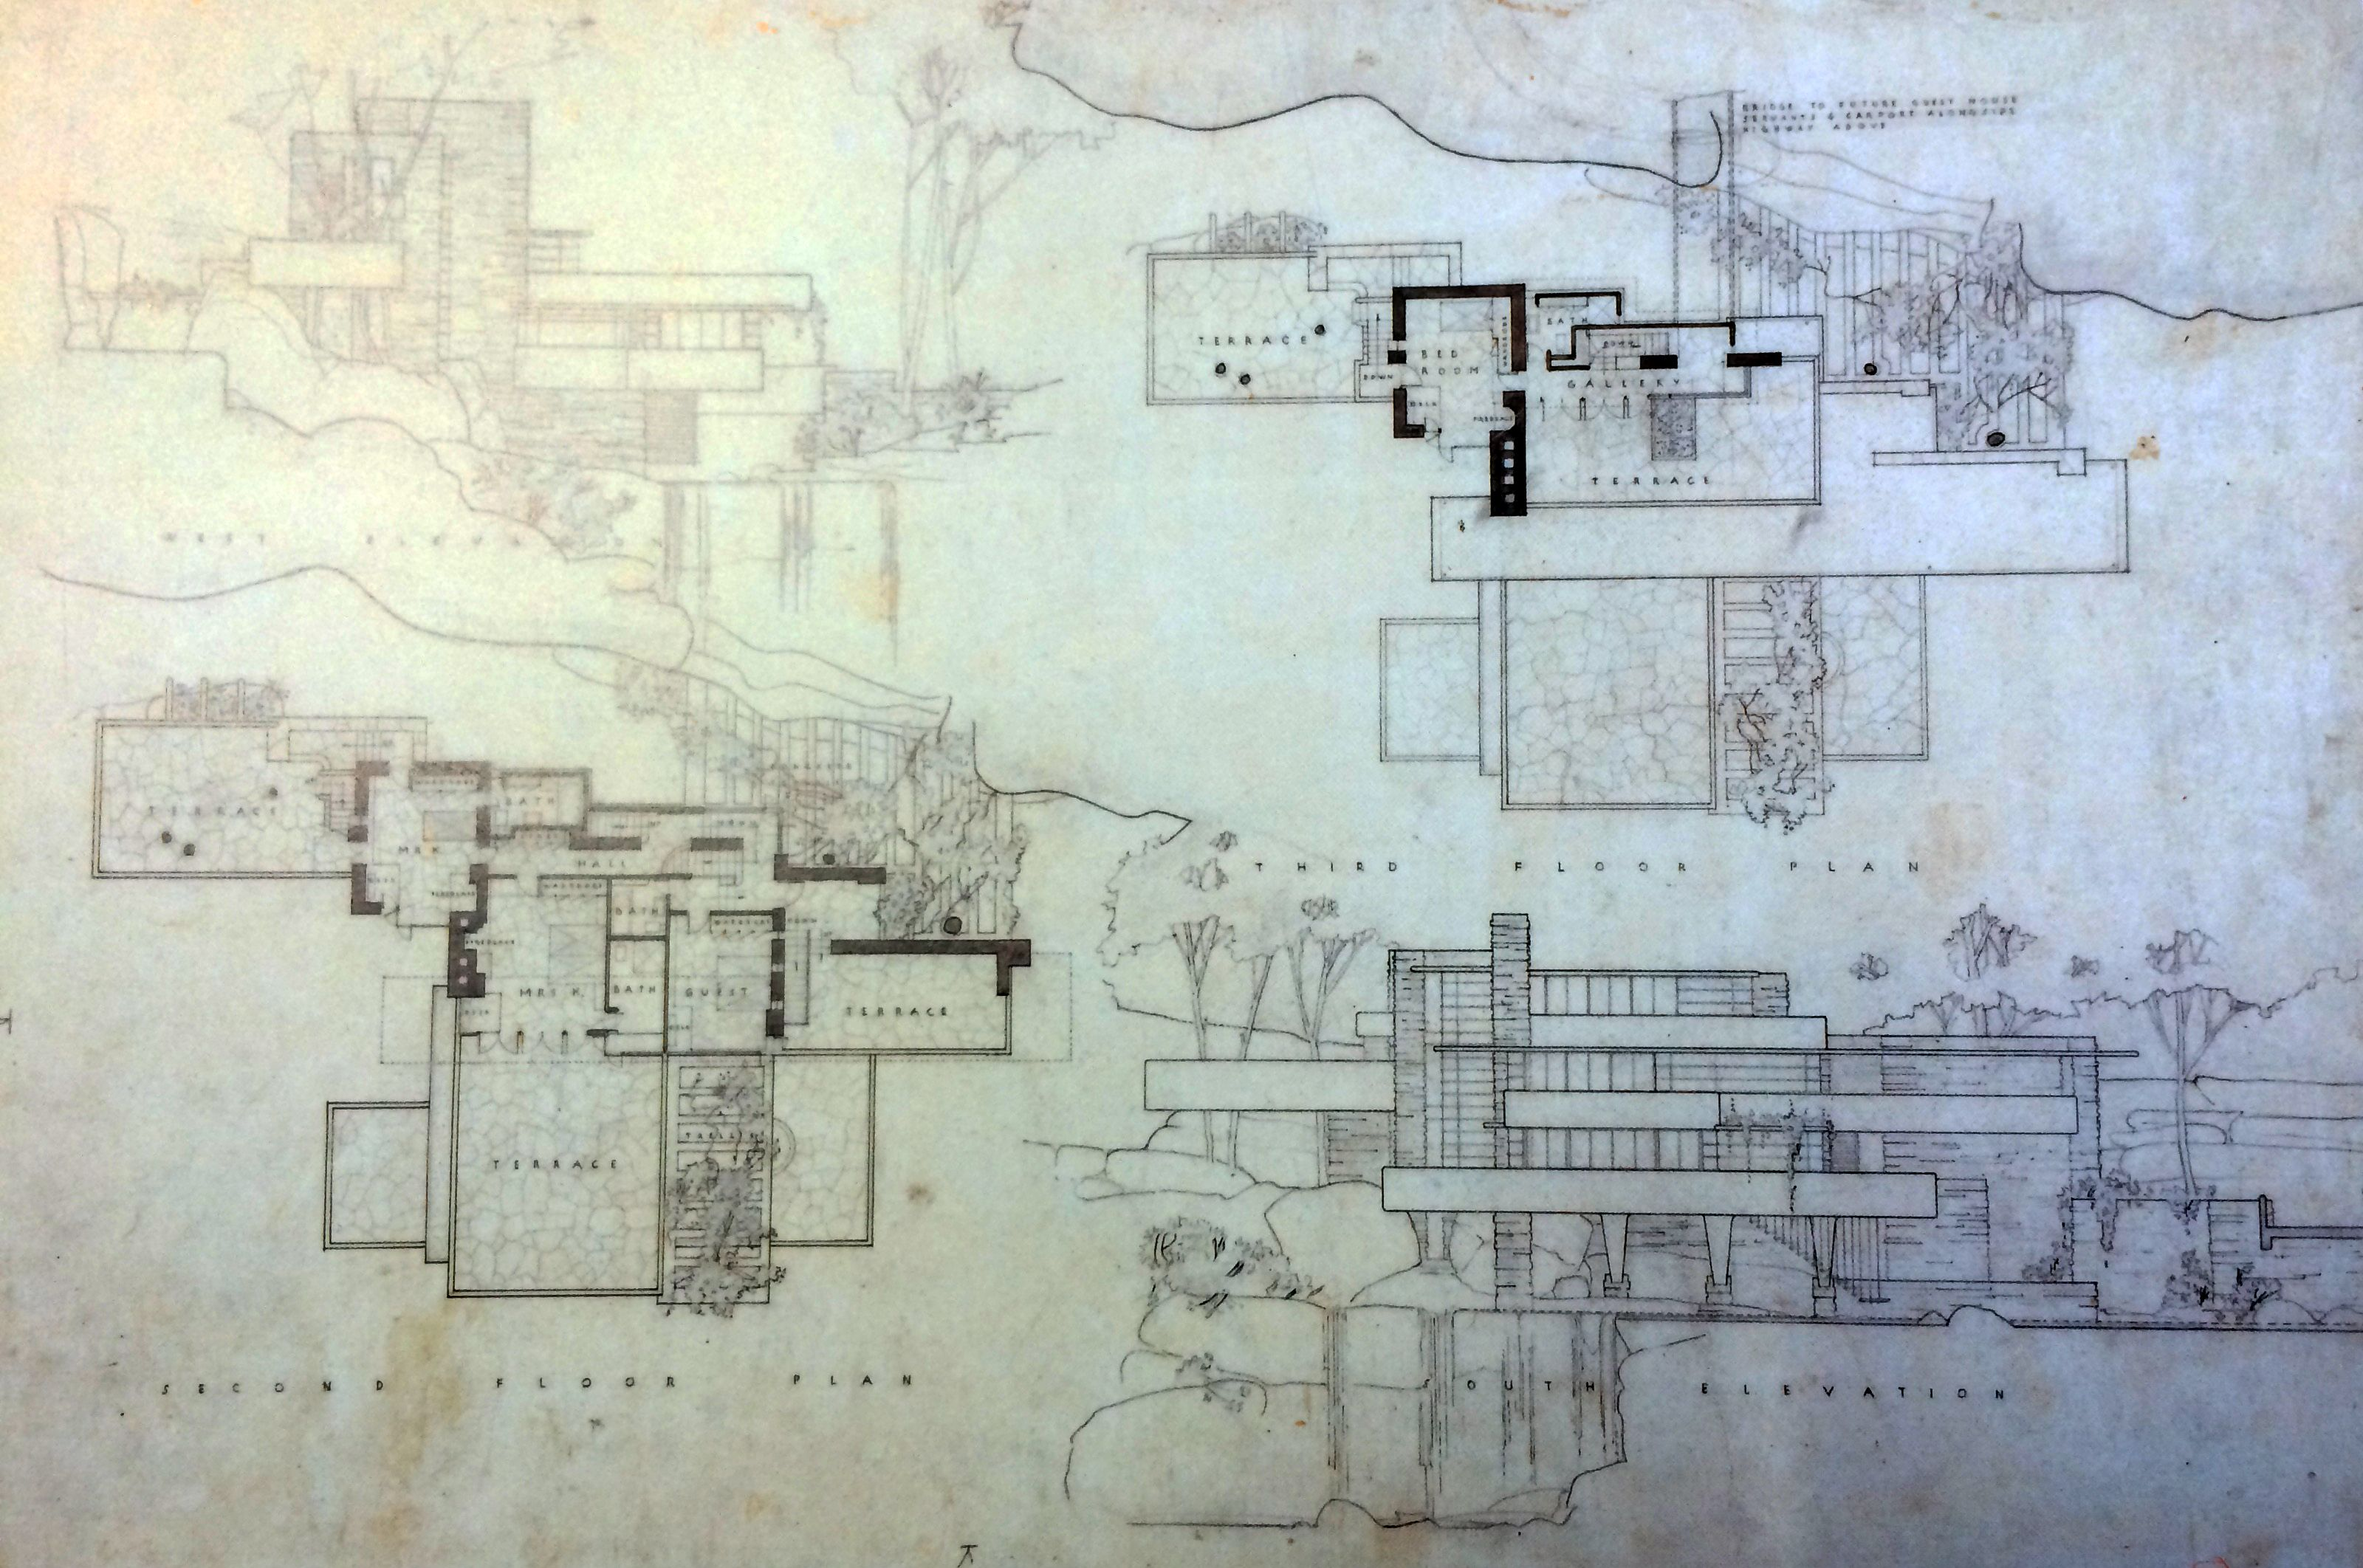 Frank lloyd wright waterfall house floor plans for House construction plan